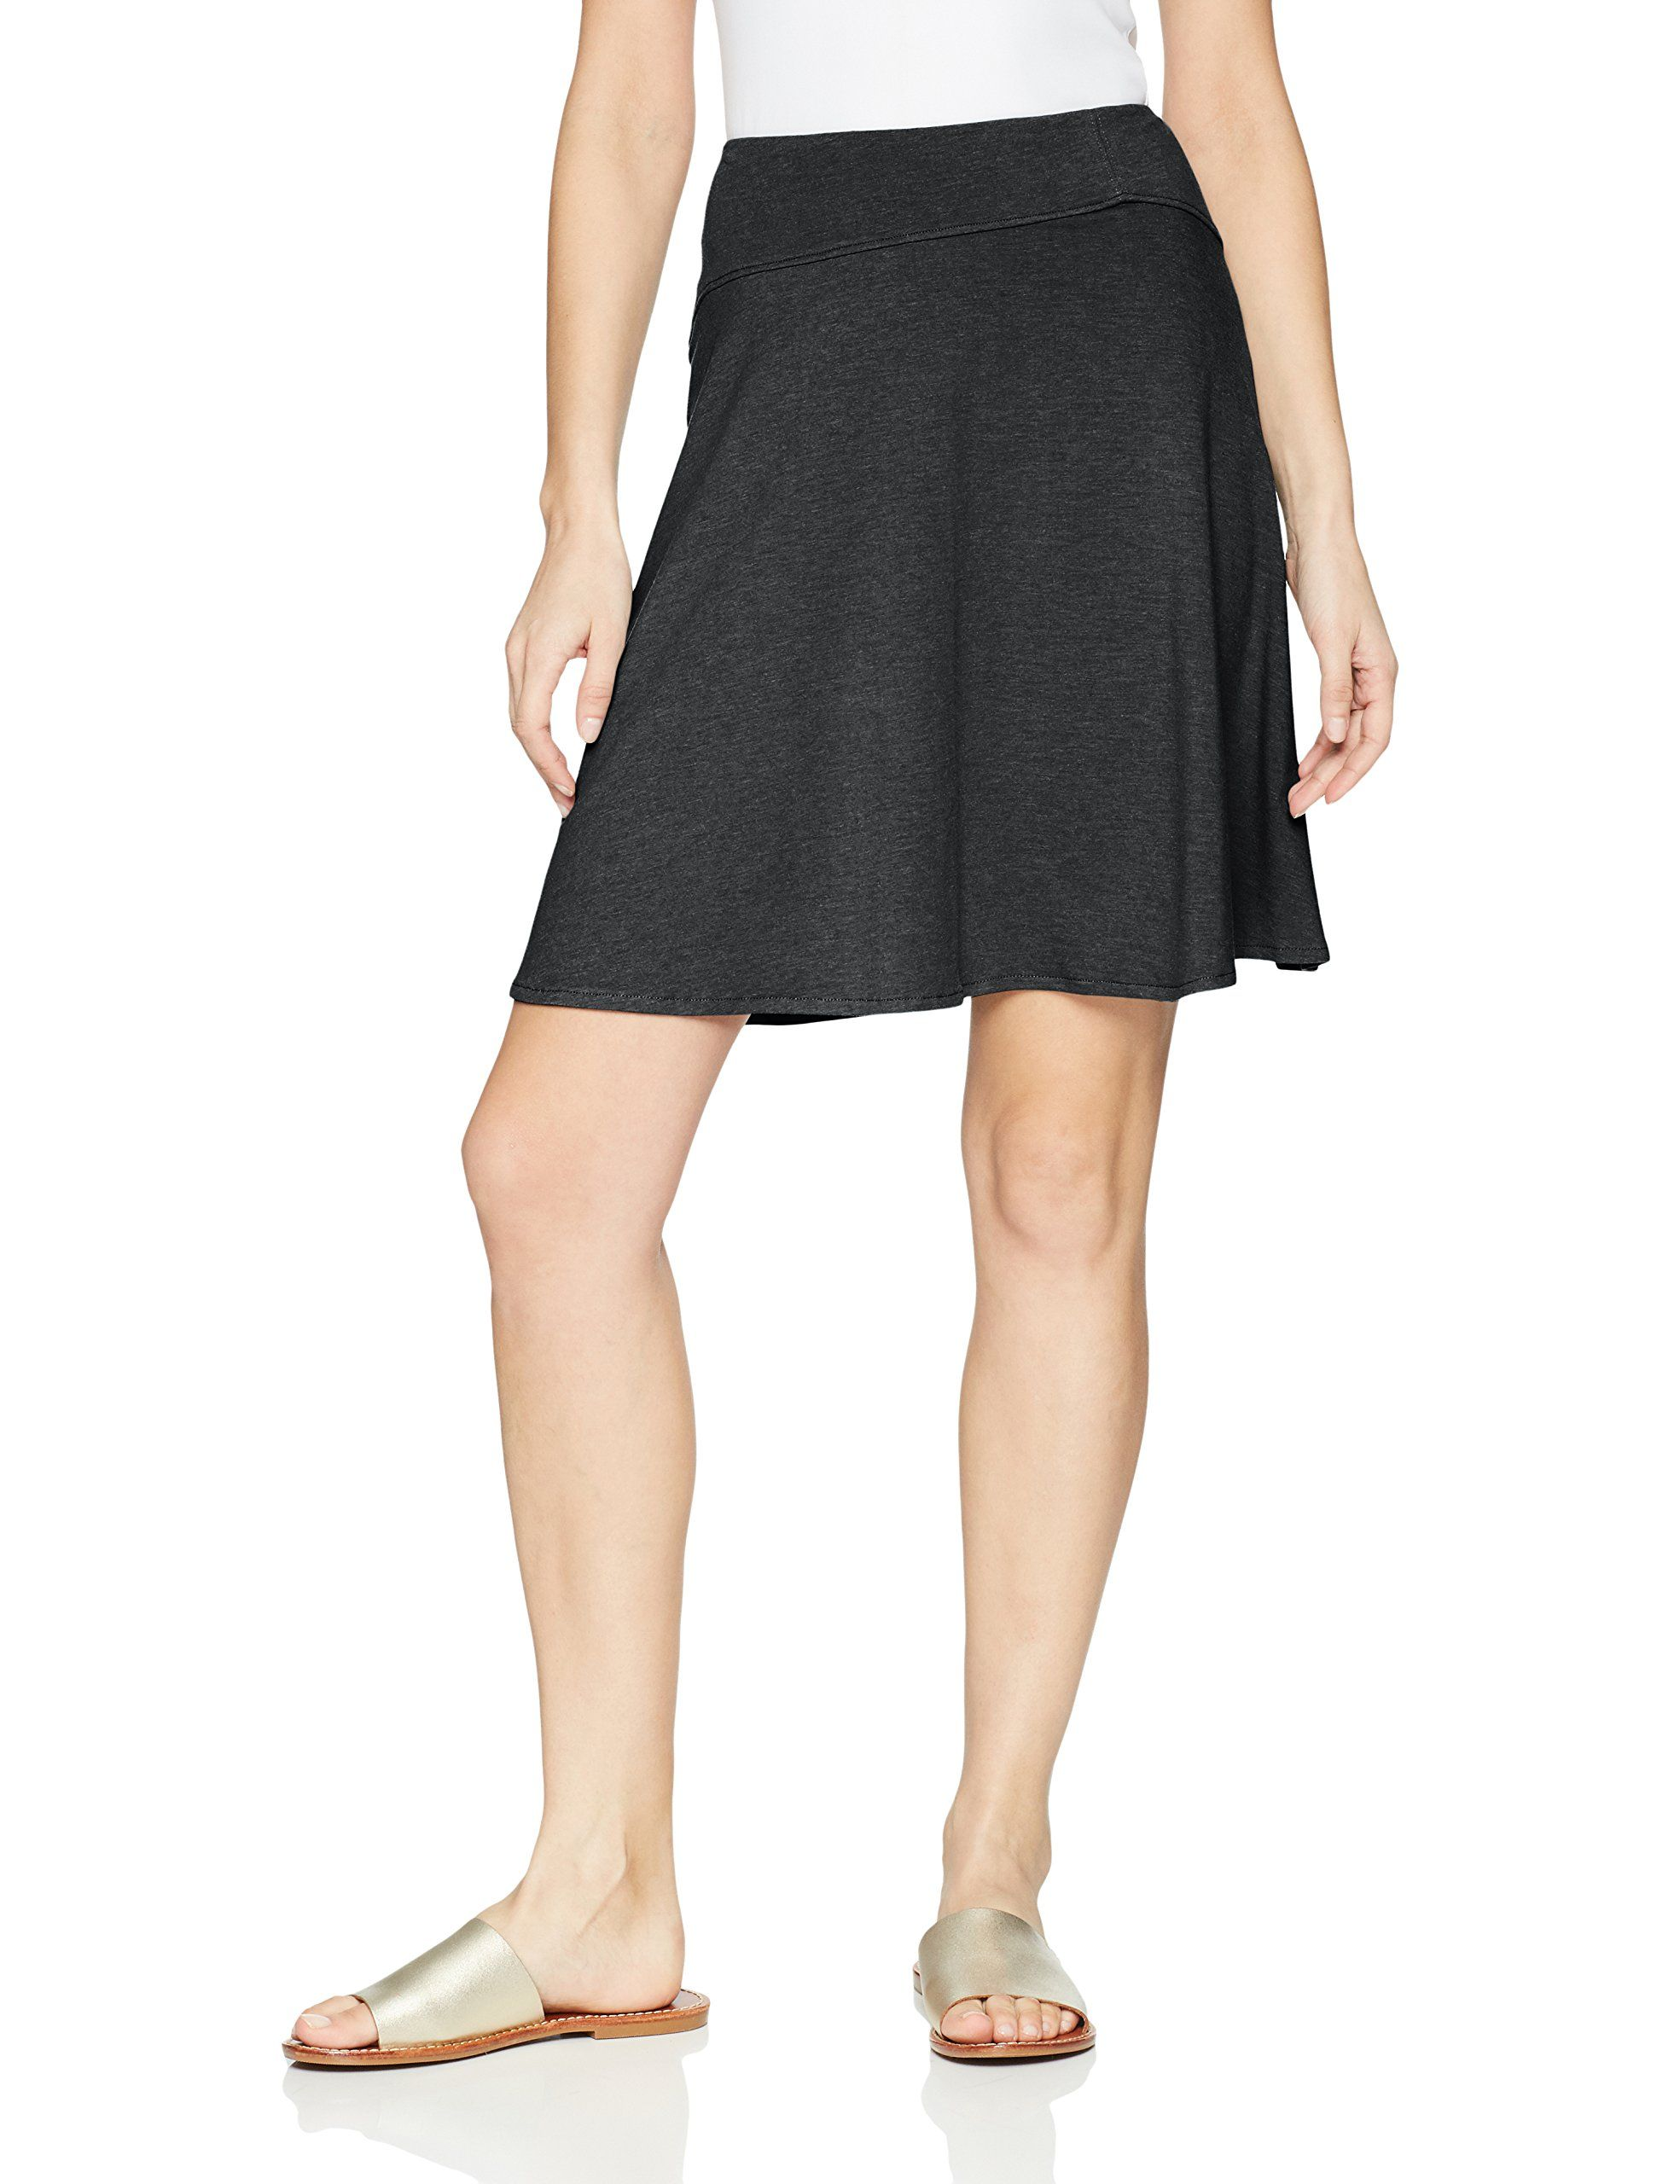 8dc44e963 prAna Camey Skirt Black XLarge ** Click image for more information. (This  is an affiliate link).